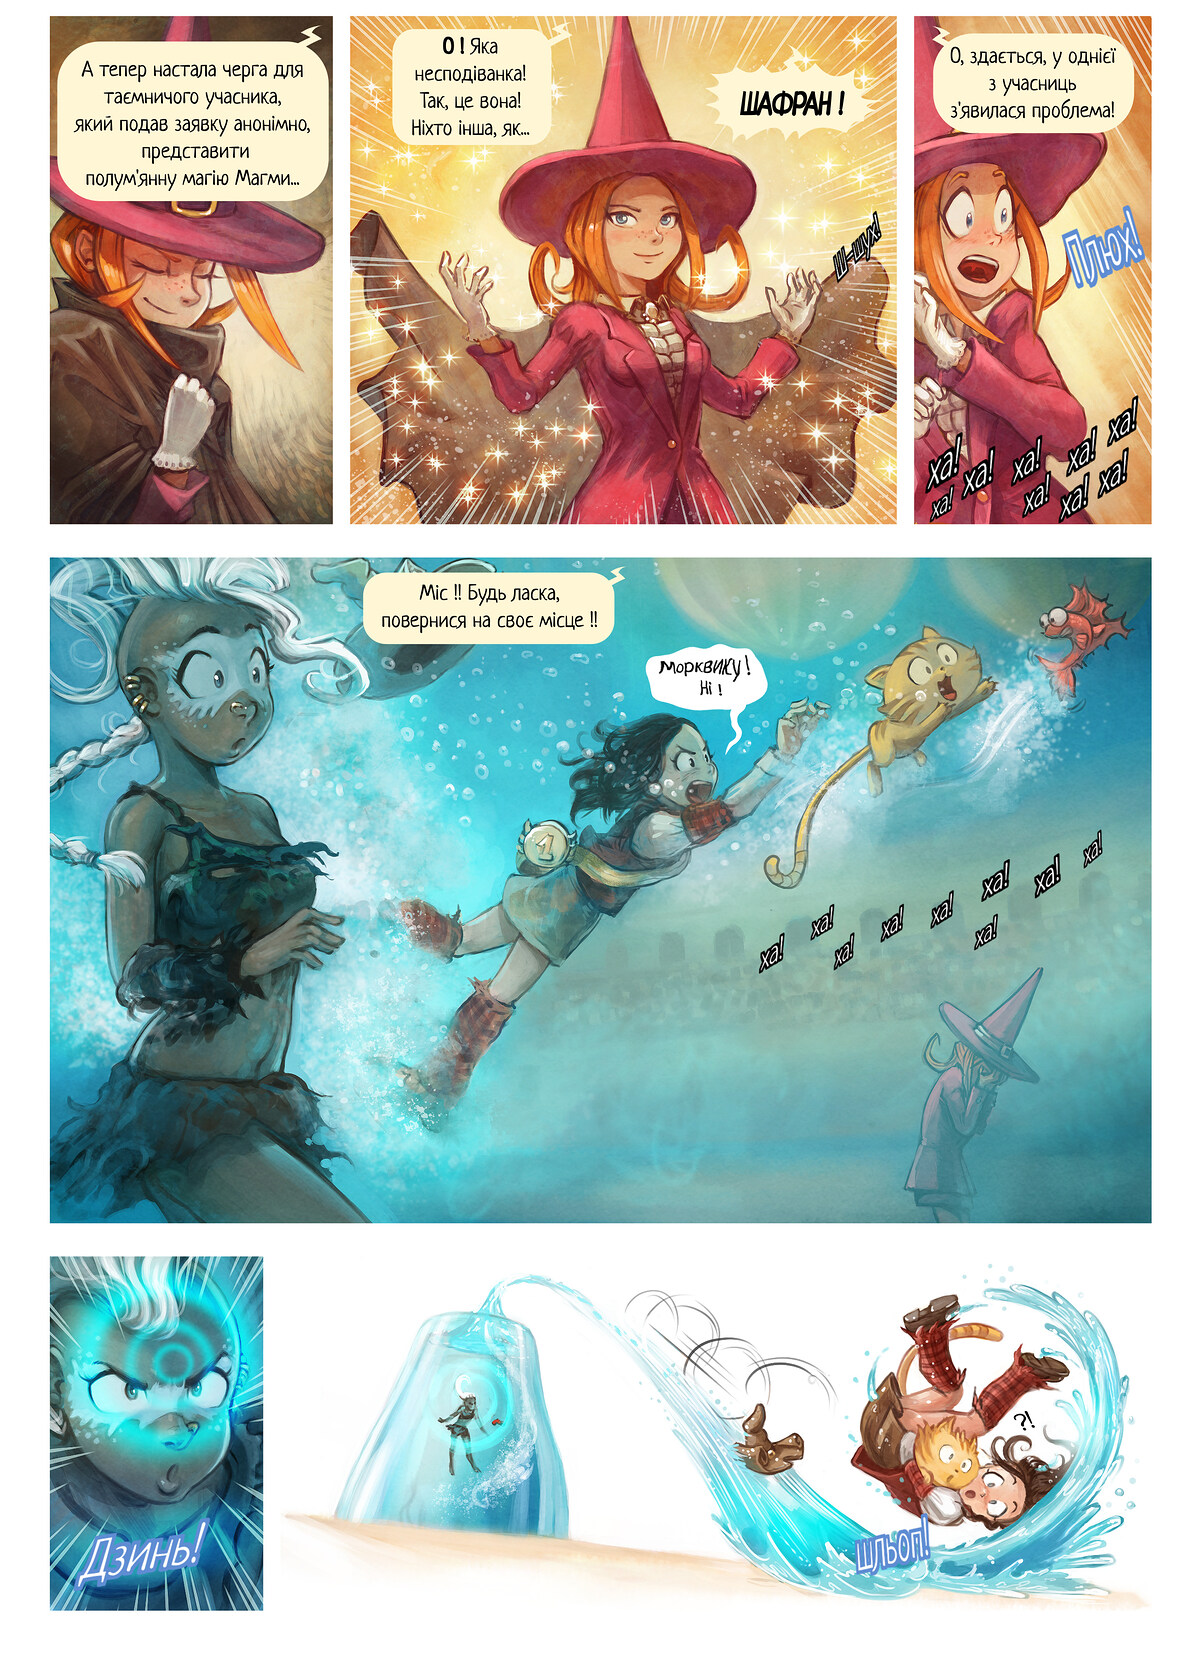 A webcomic page of Pepper&Carrot, епізод 21 [uk], стор. 6